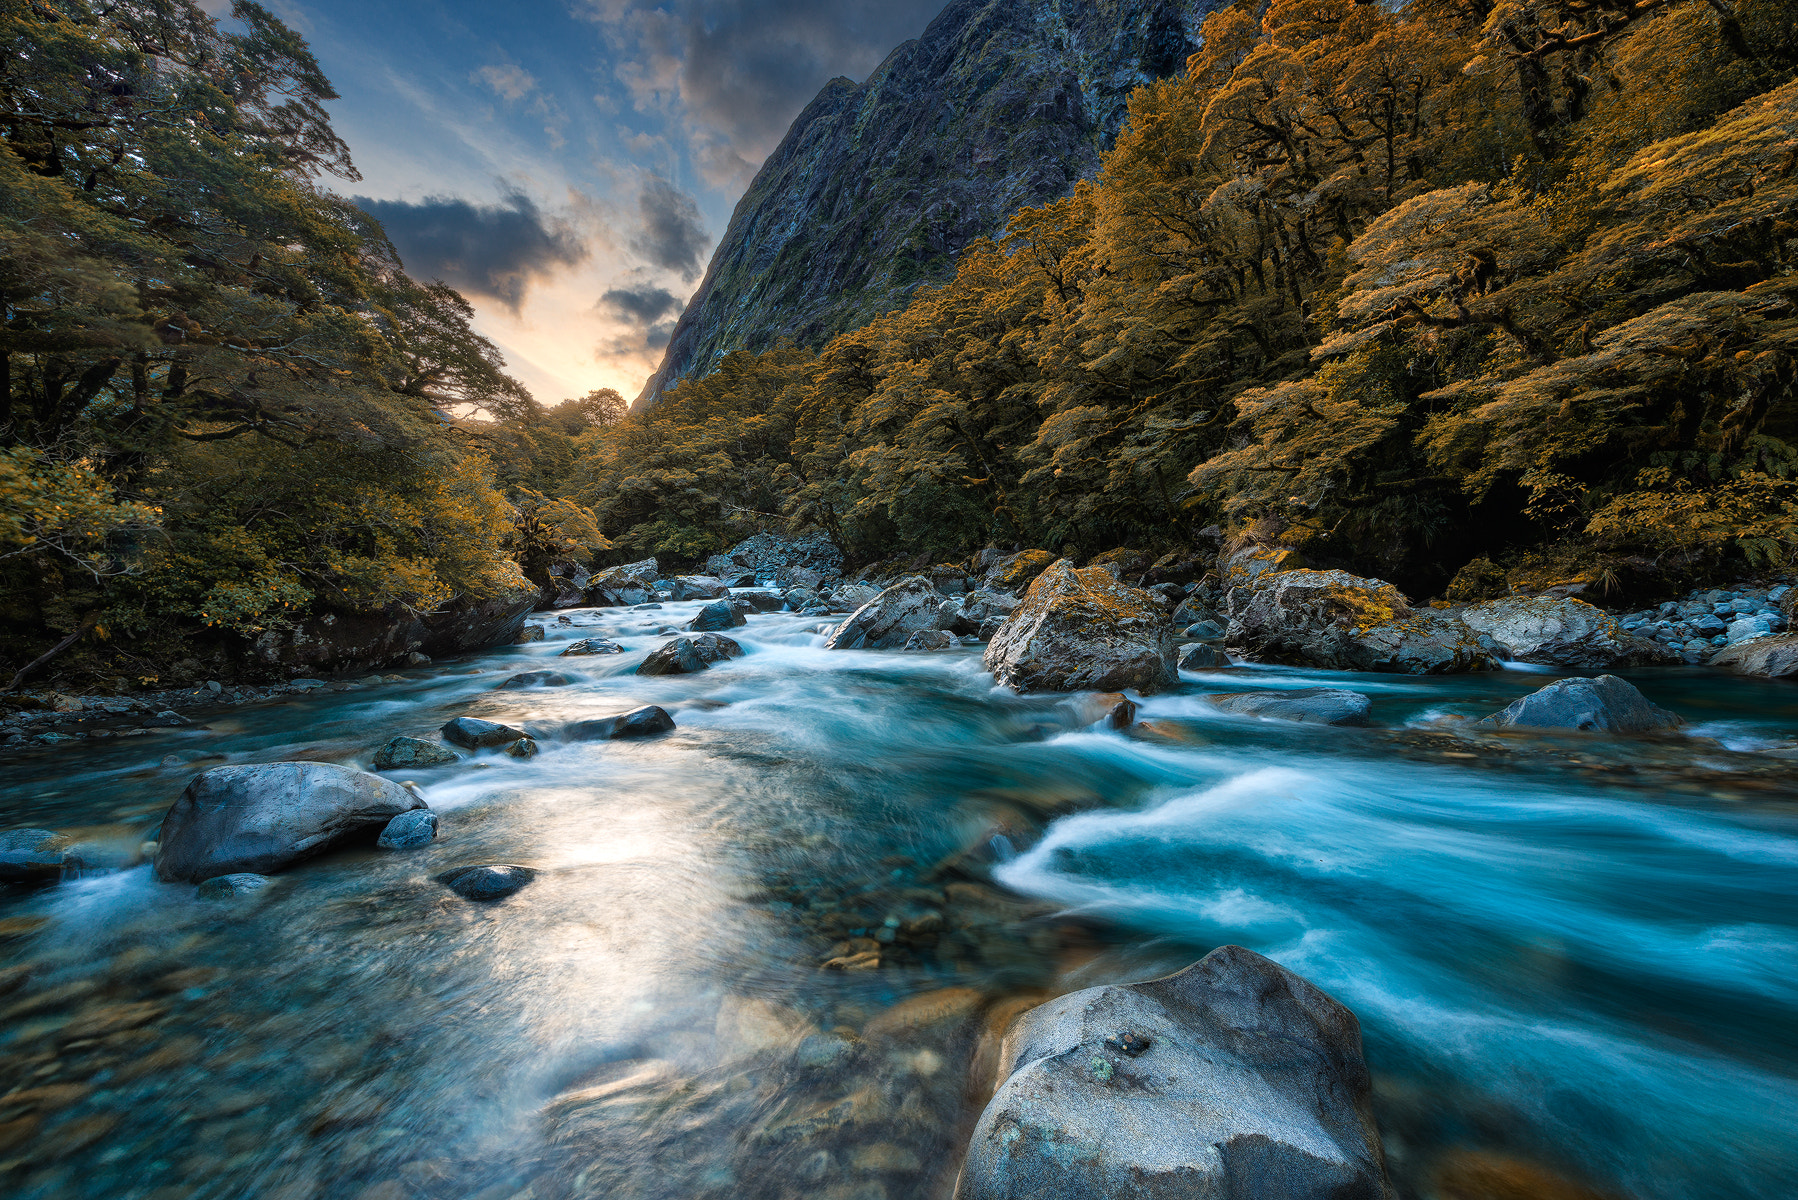 Photograph Sunset at Fiordland National Park by Danny Xeero on 500px